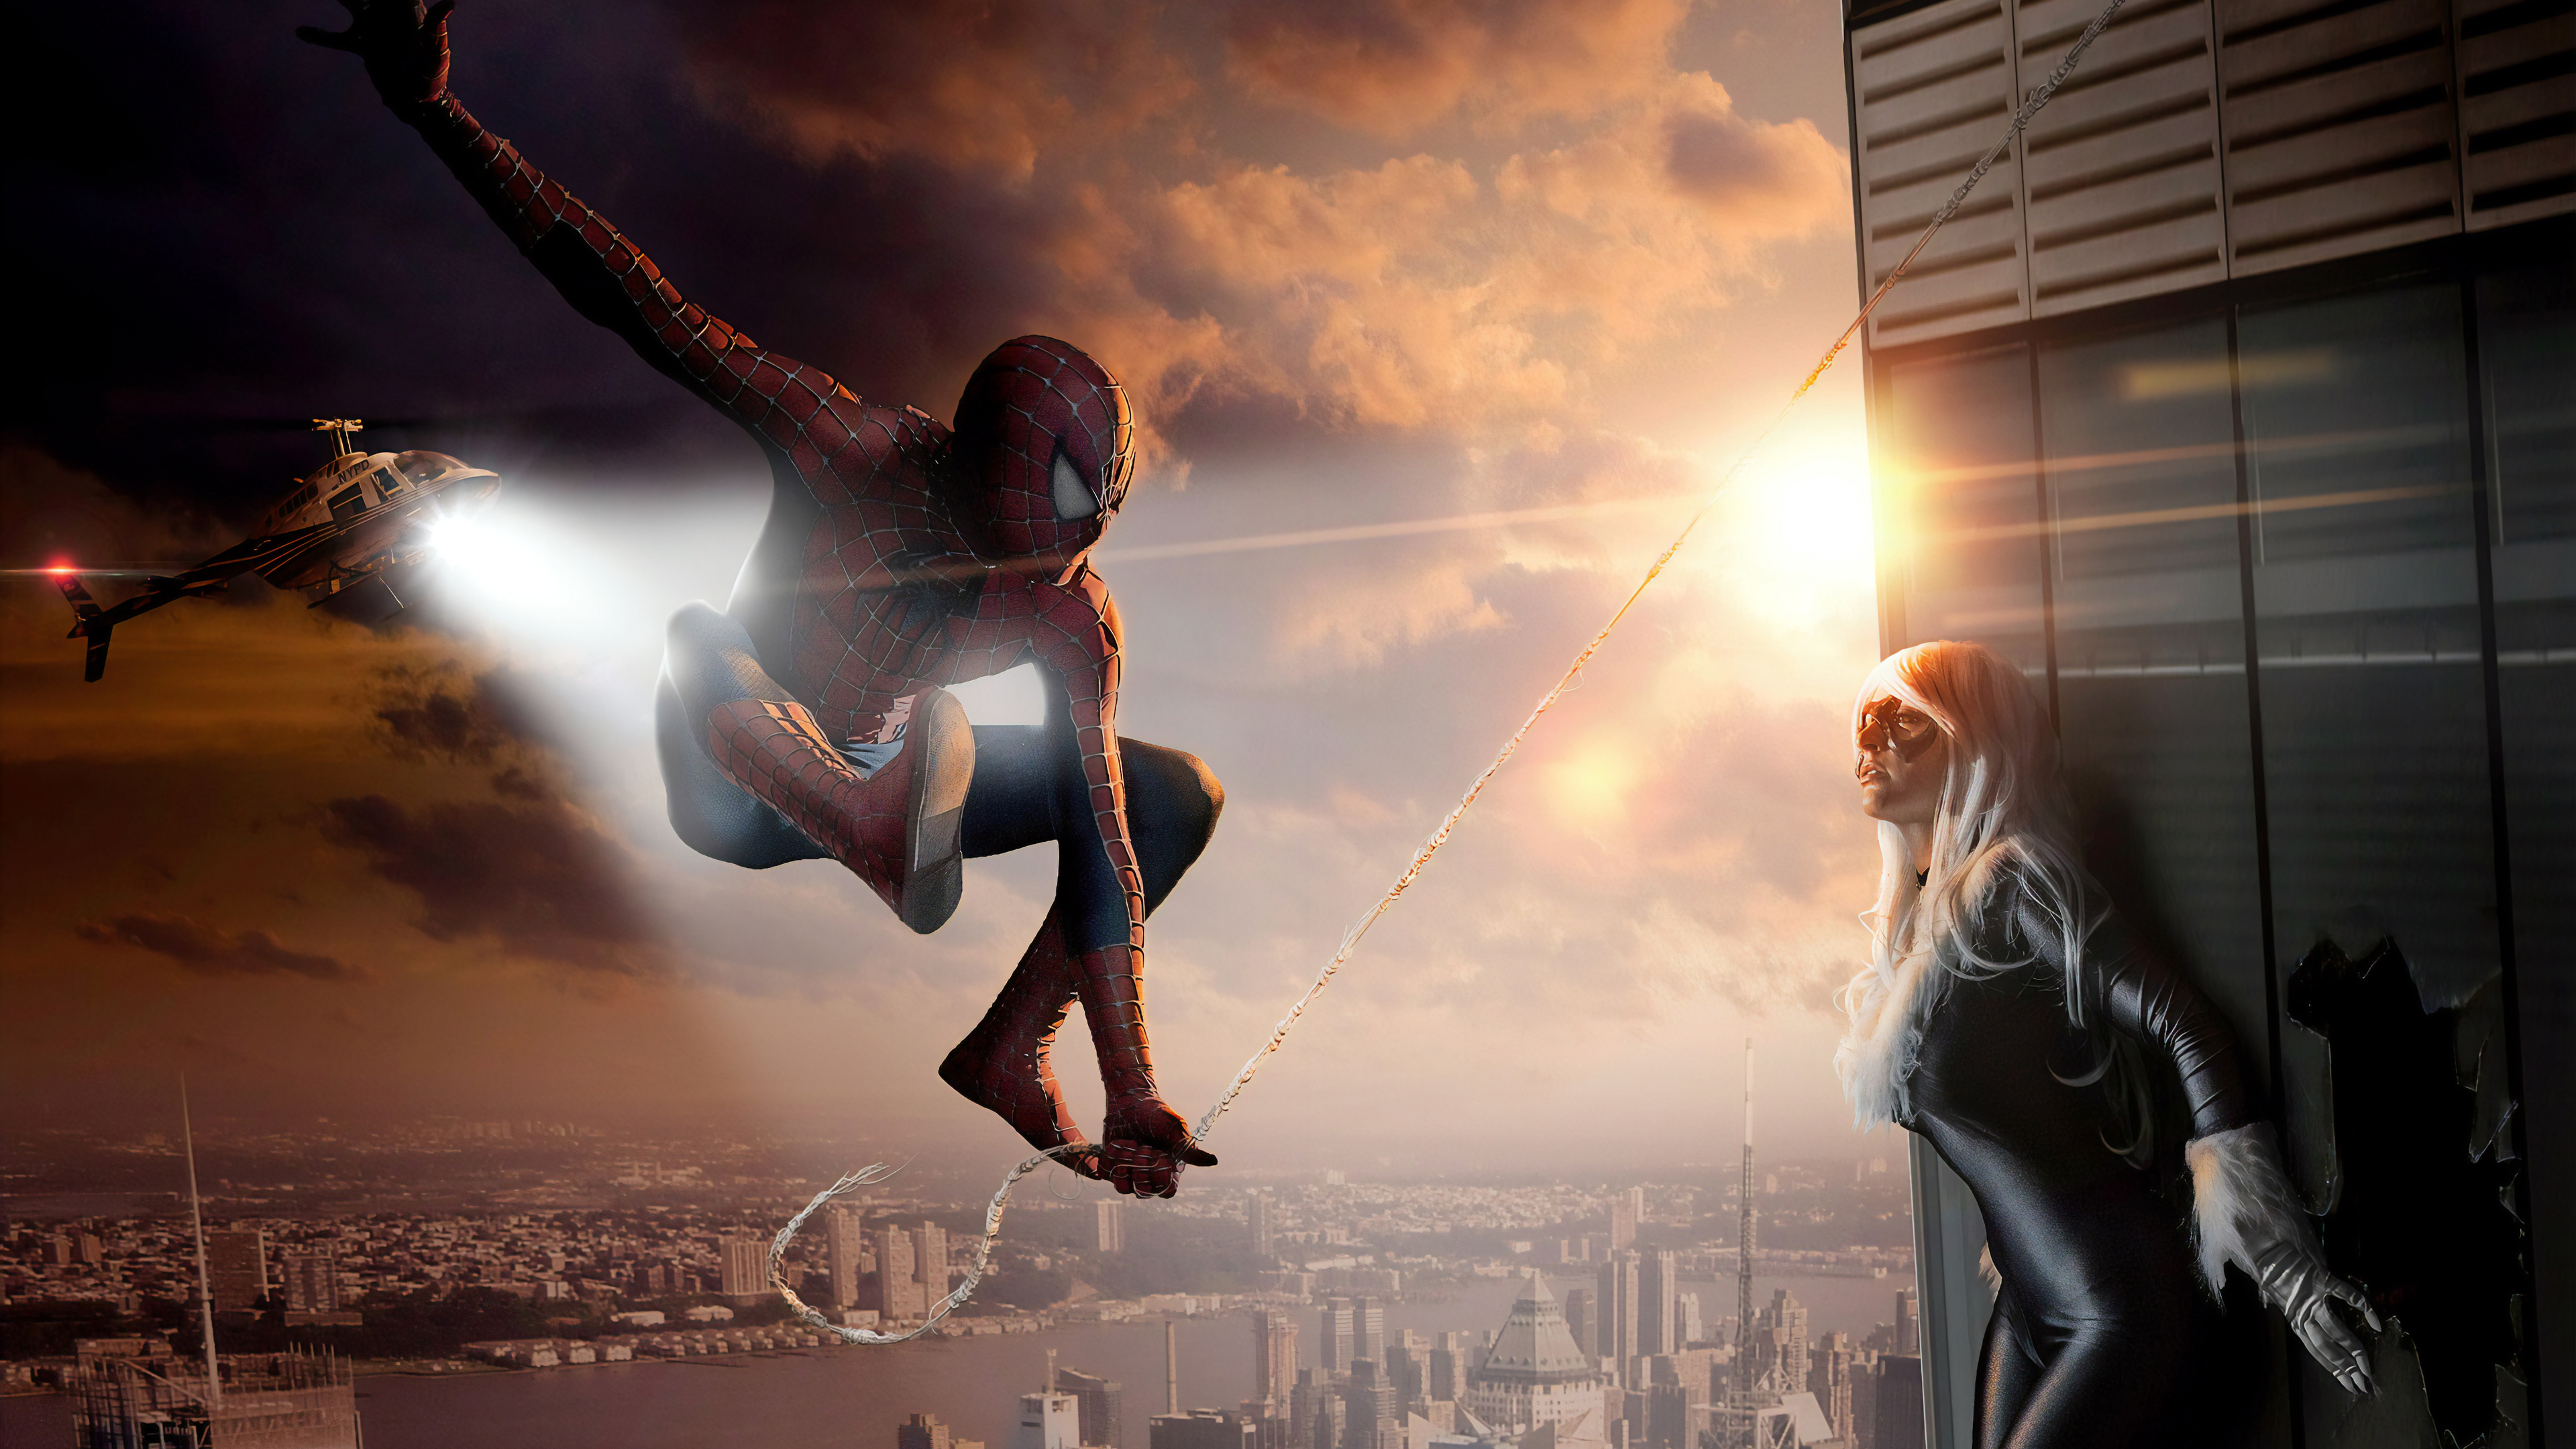 spiderman and catwoman cosplay 1560533721 - Spiderman And Catwoman Cosplay - superheroes wallpapers, spiderman wallpapers, hd-wallpapers, cosplay wallpapers, catwoman wallpapers, behance wallpapers, 4k-wallpapers